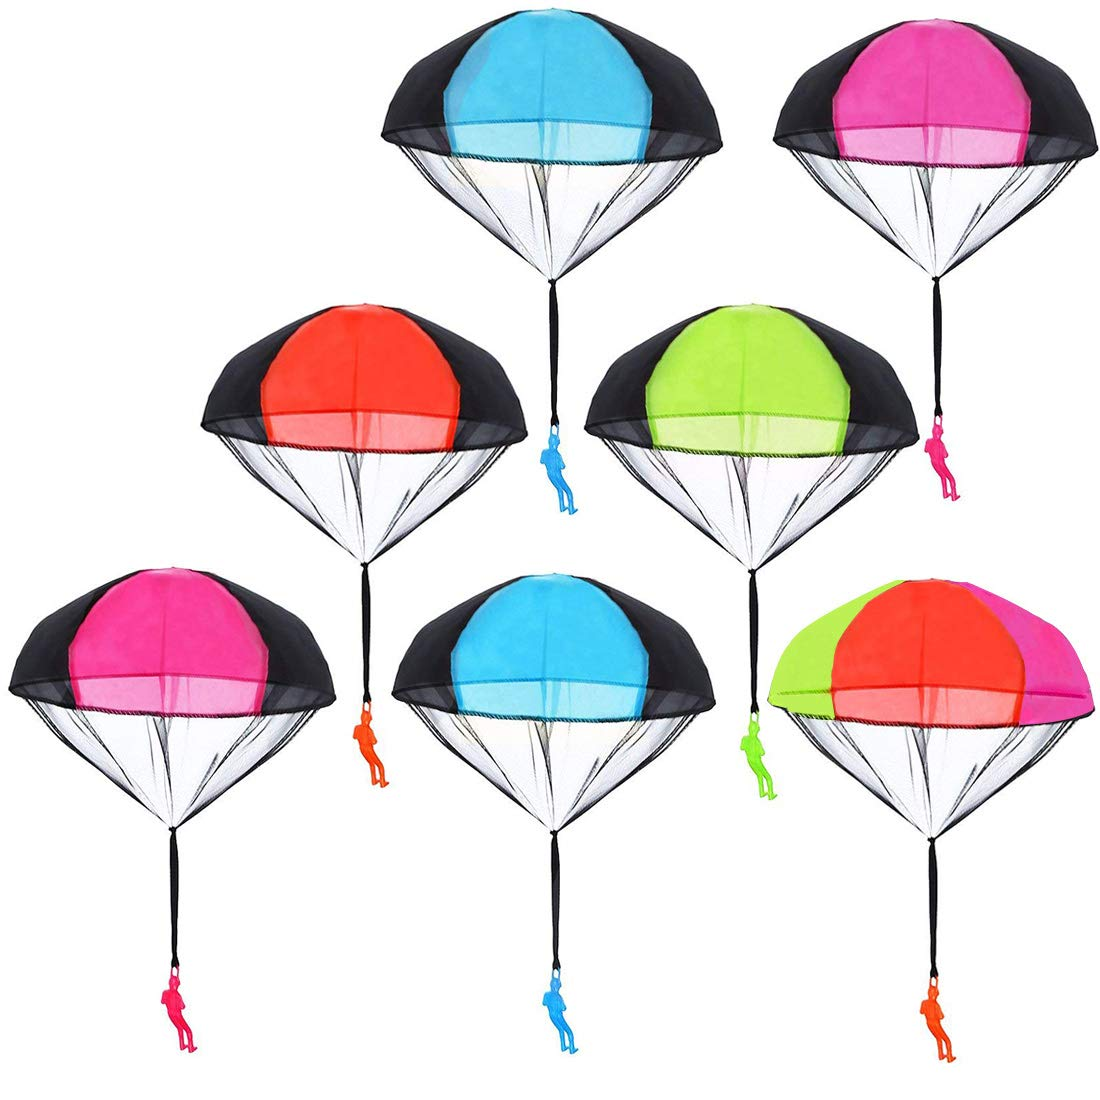 Huihui Decoration 7 Pieces Parachute Toys,Tangle Free Parachute Men Throwing Hand Throw Soldiers Toss It Up and Watching Landing Outdoor Parachute for Kids